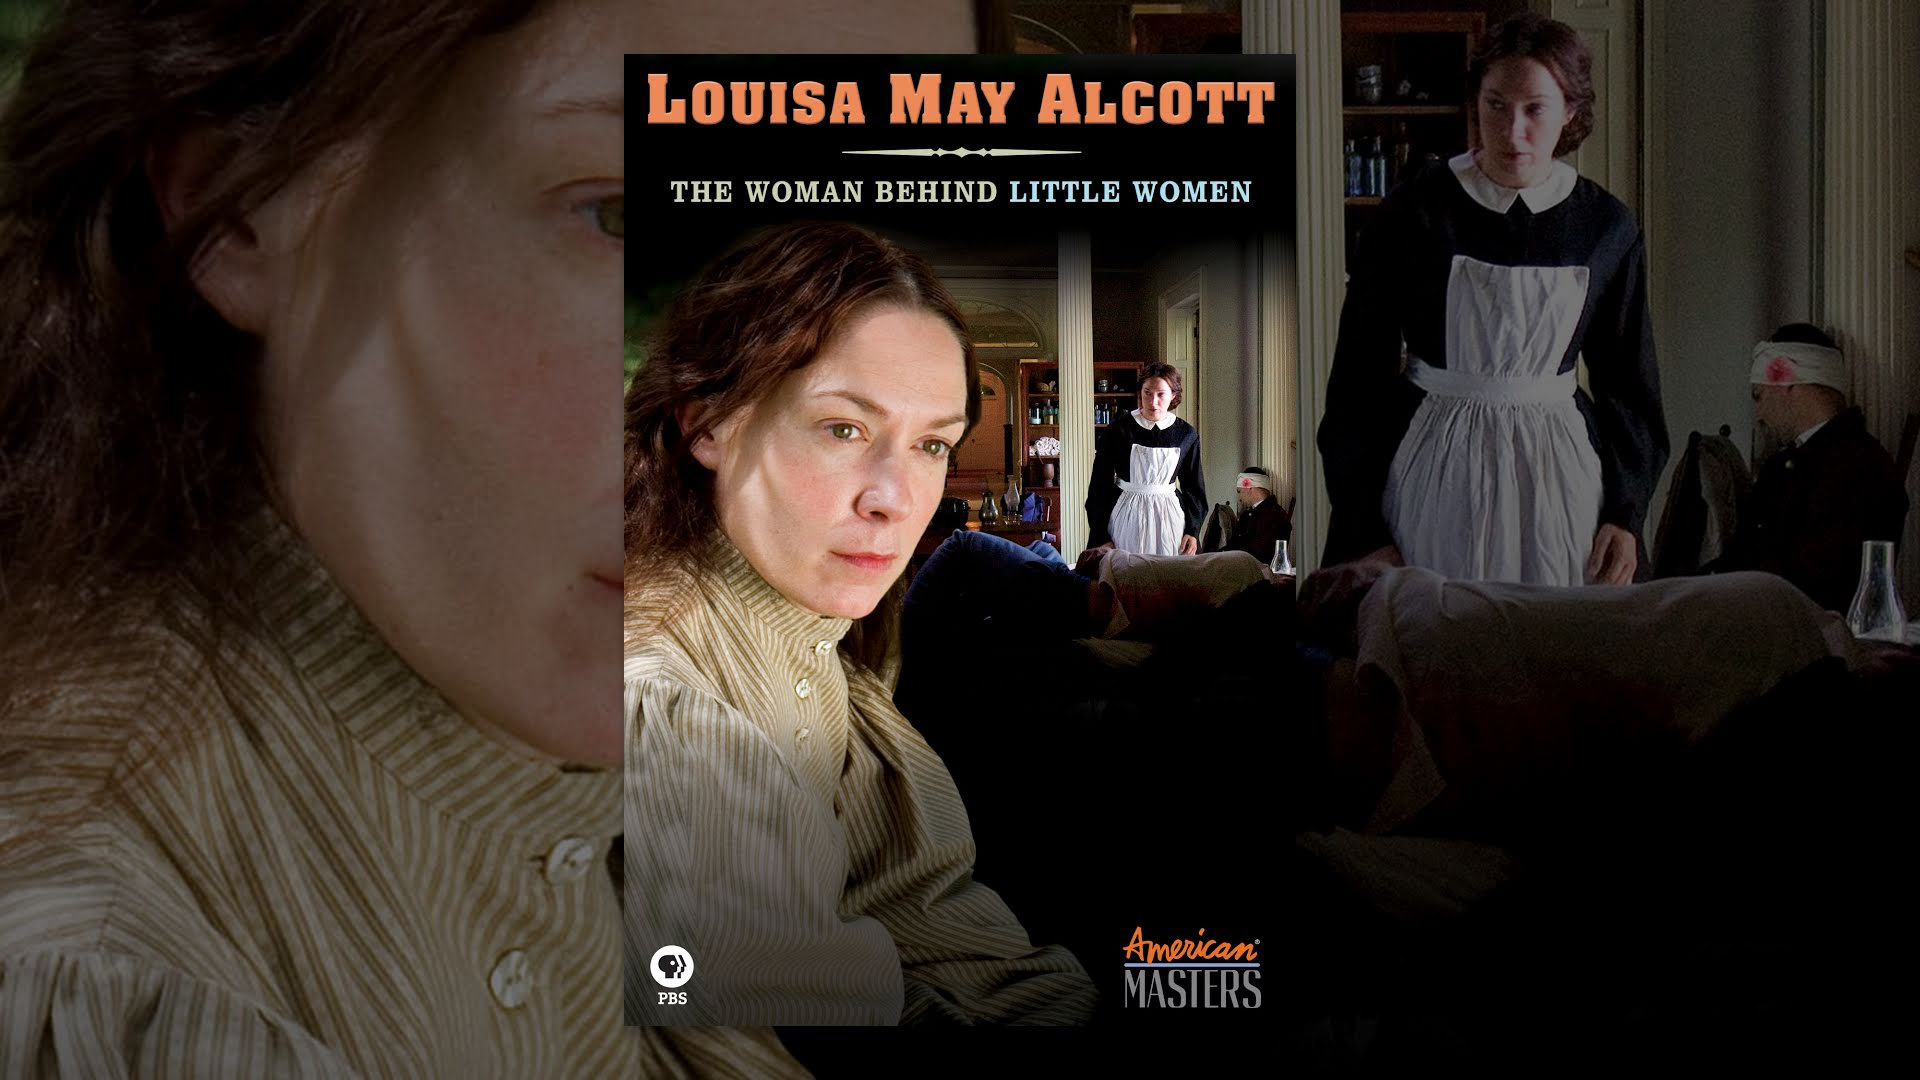 Louisa May Alcott: American Masters